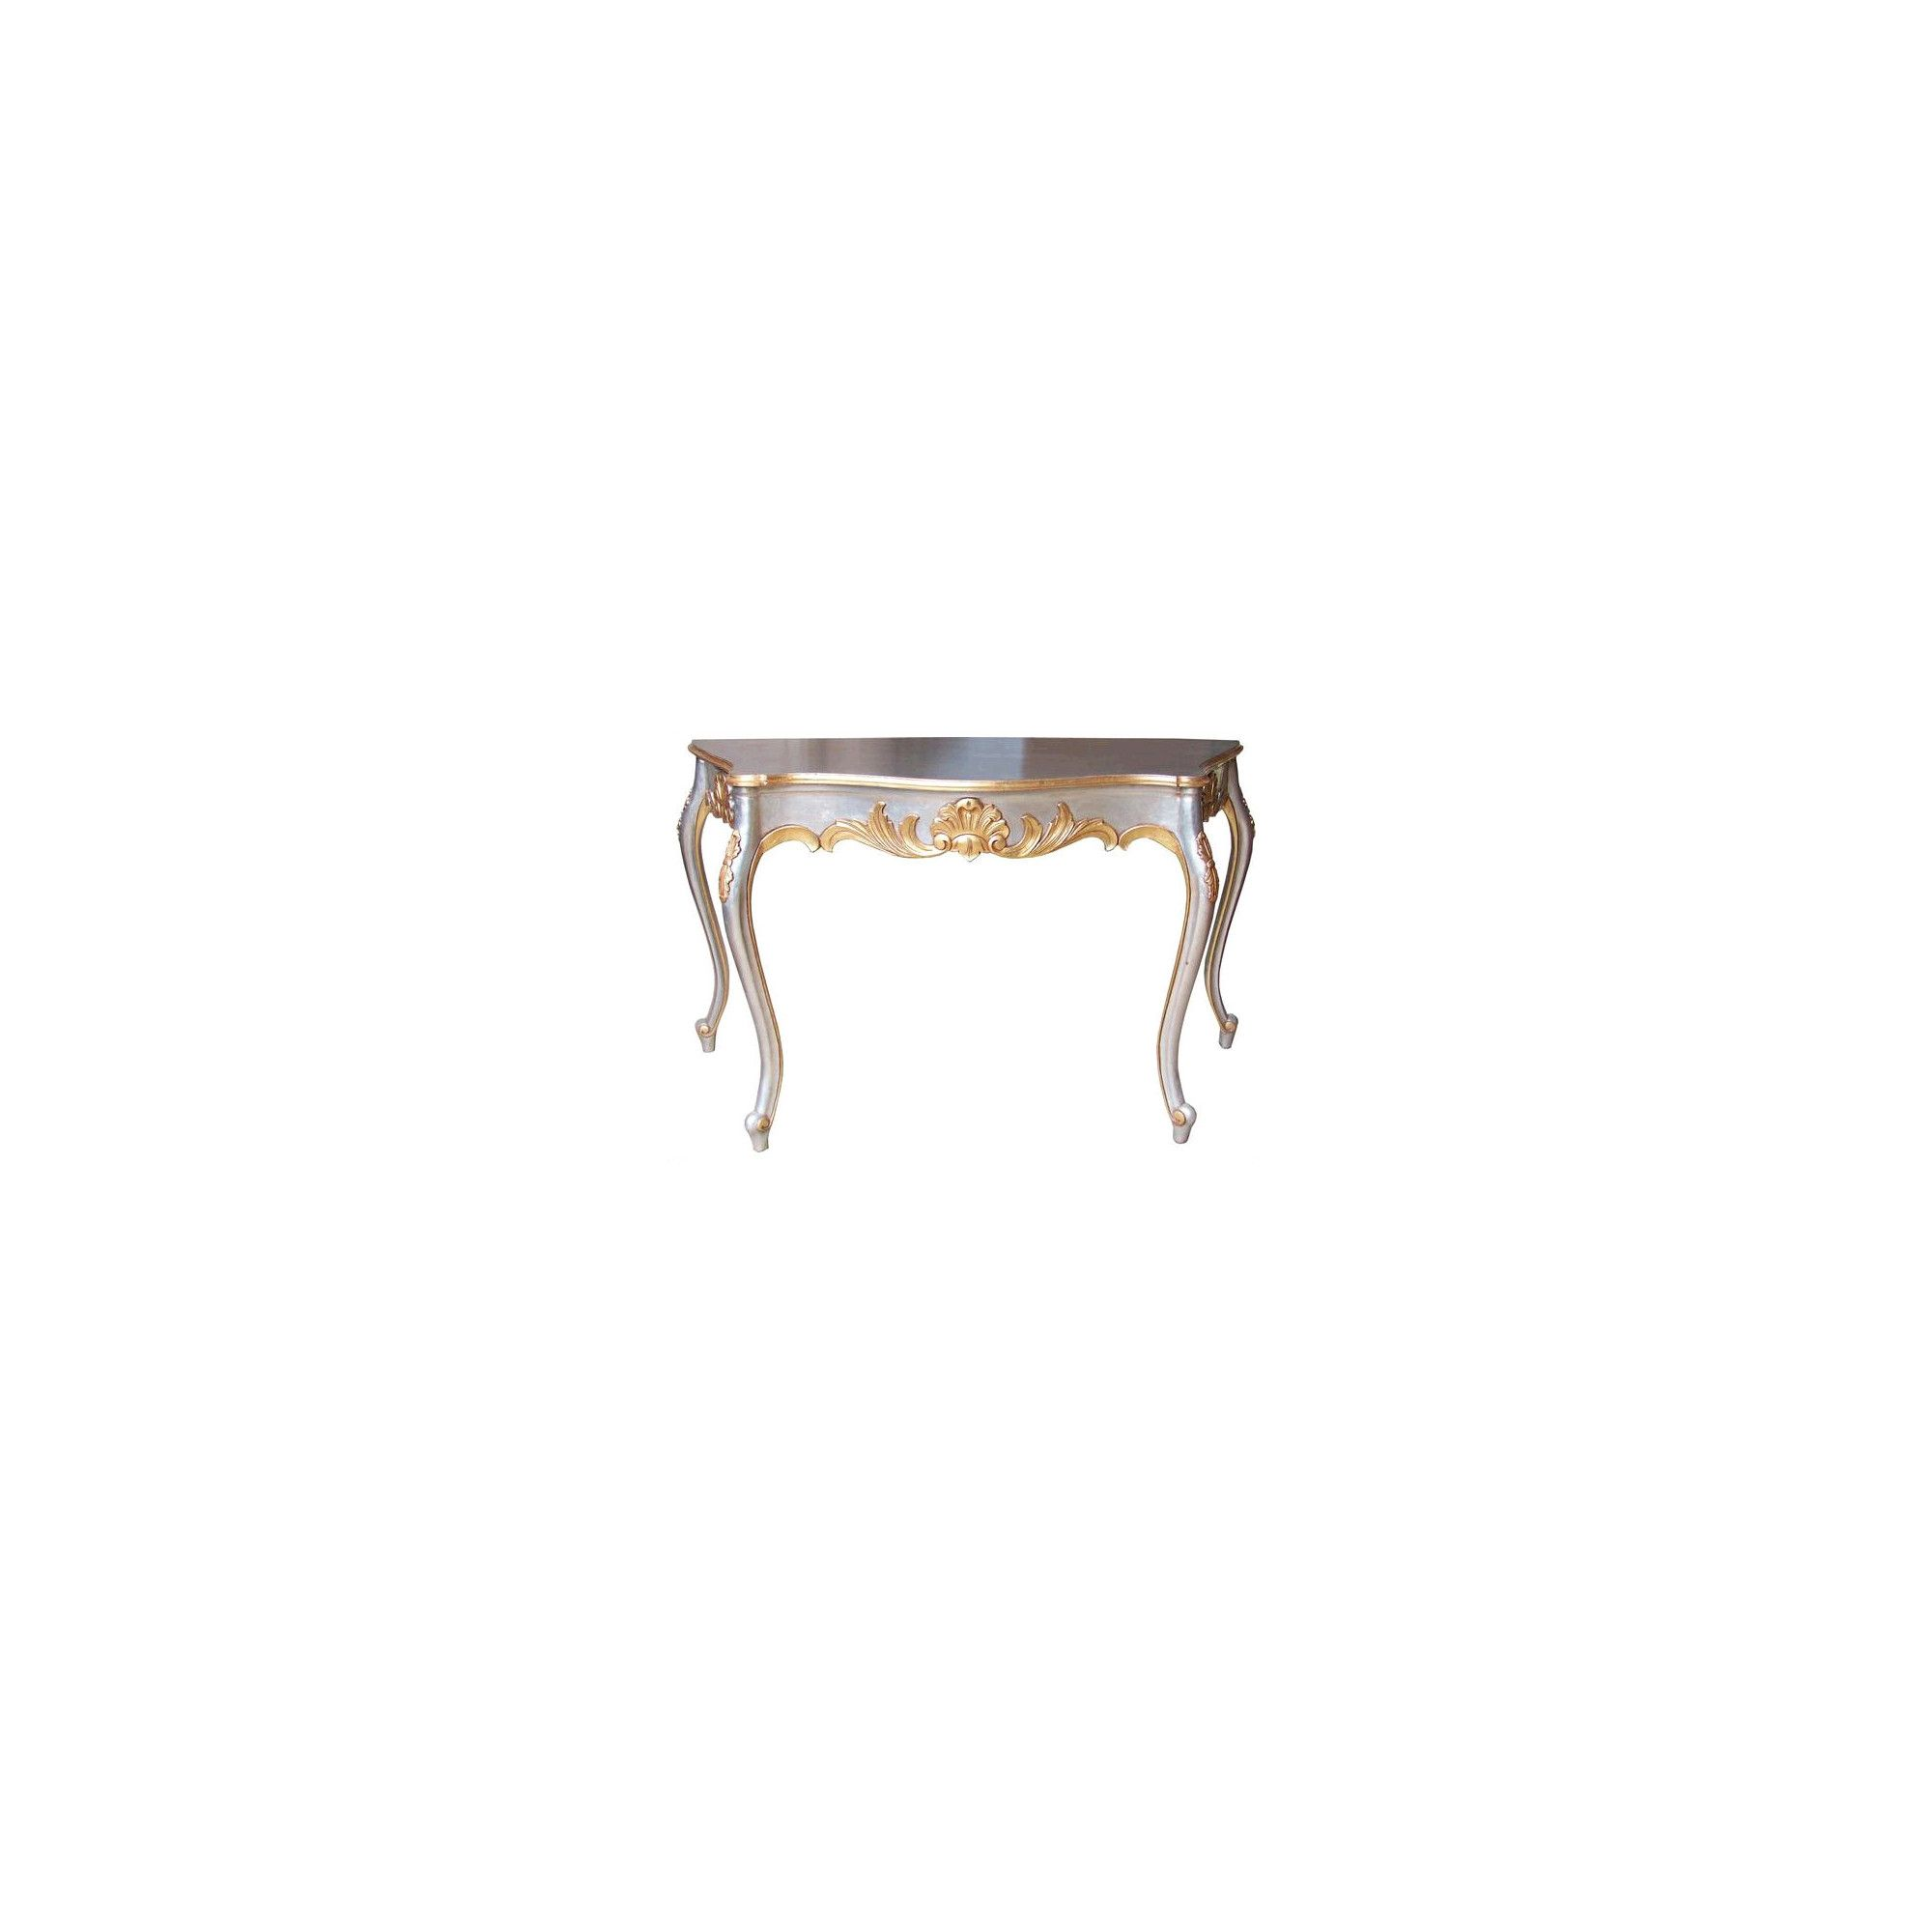 Lock stock and barrel Mahogany Marble Topped Carved Serpentine Table in Mahogany - Silver at Tesco Direct